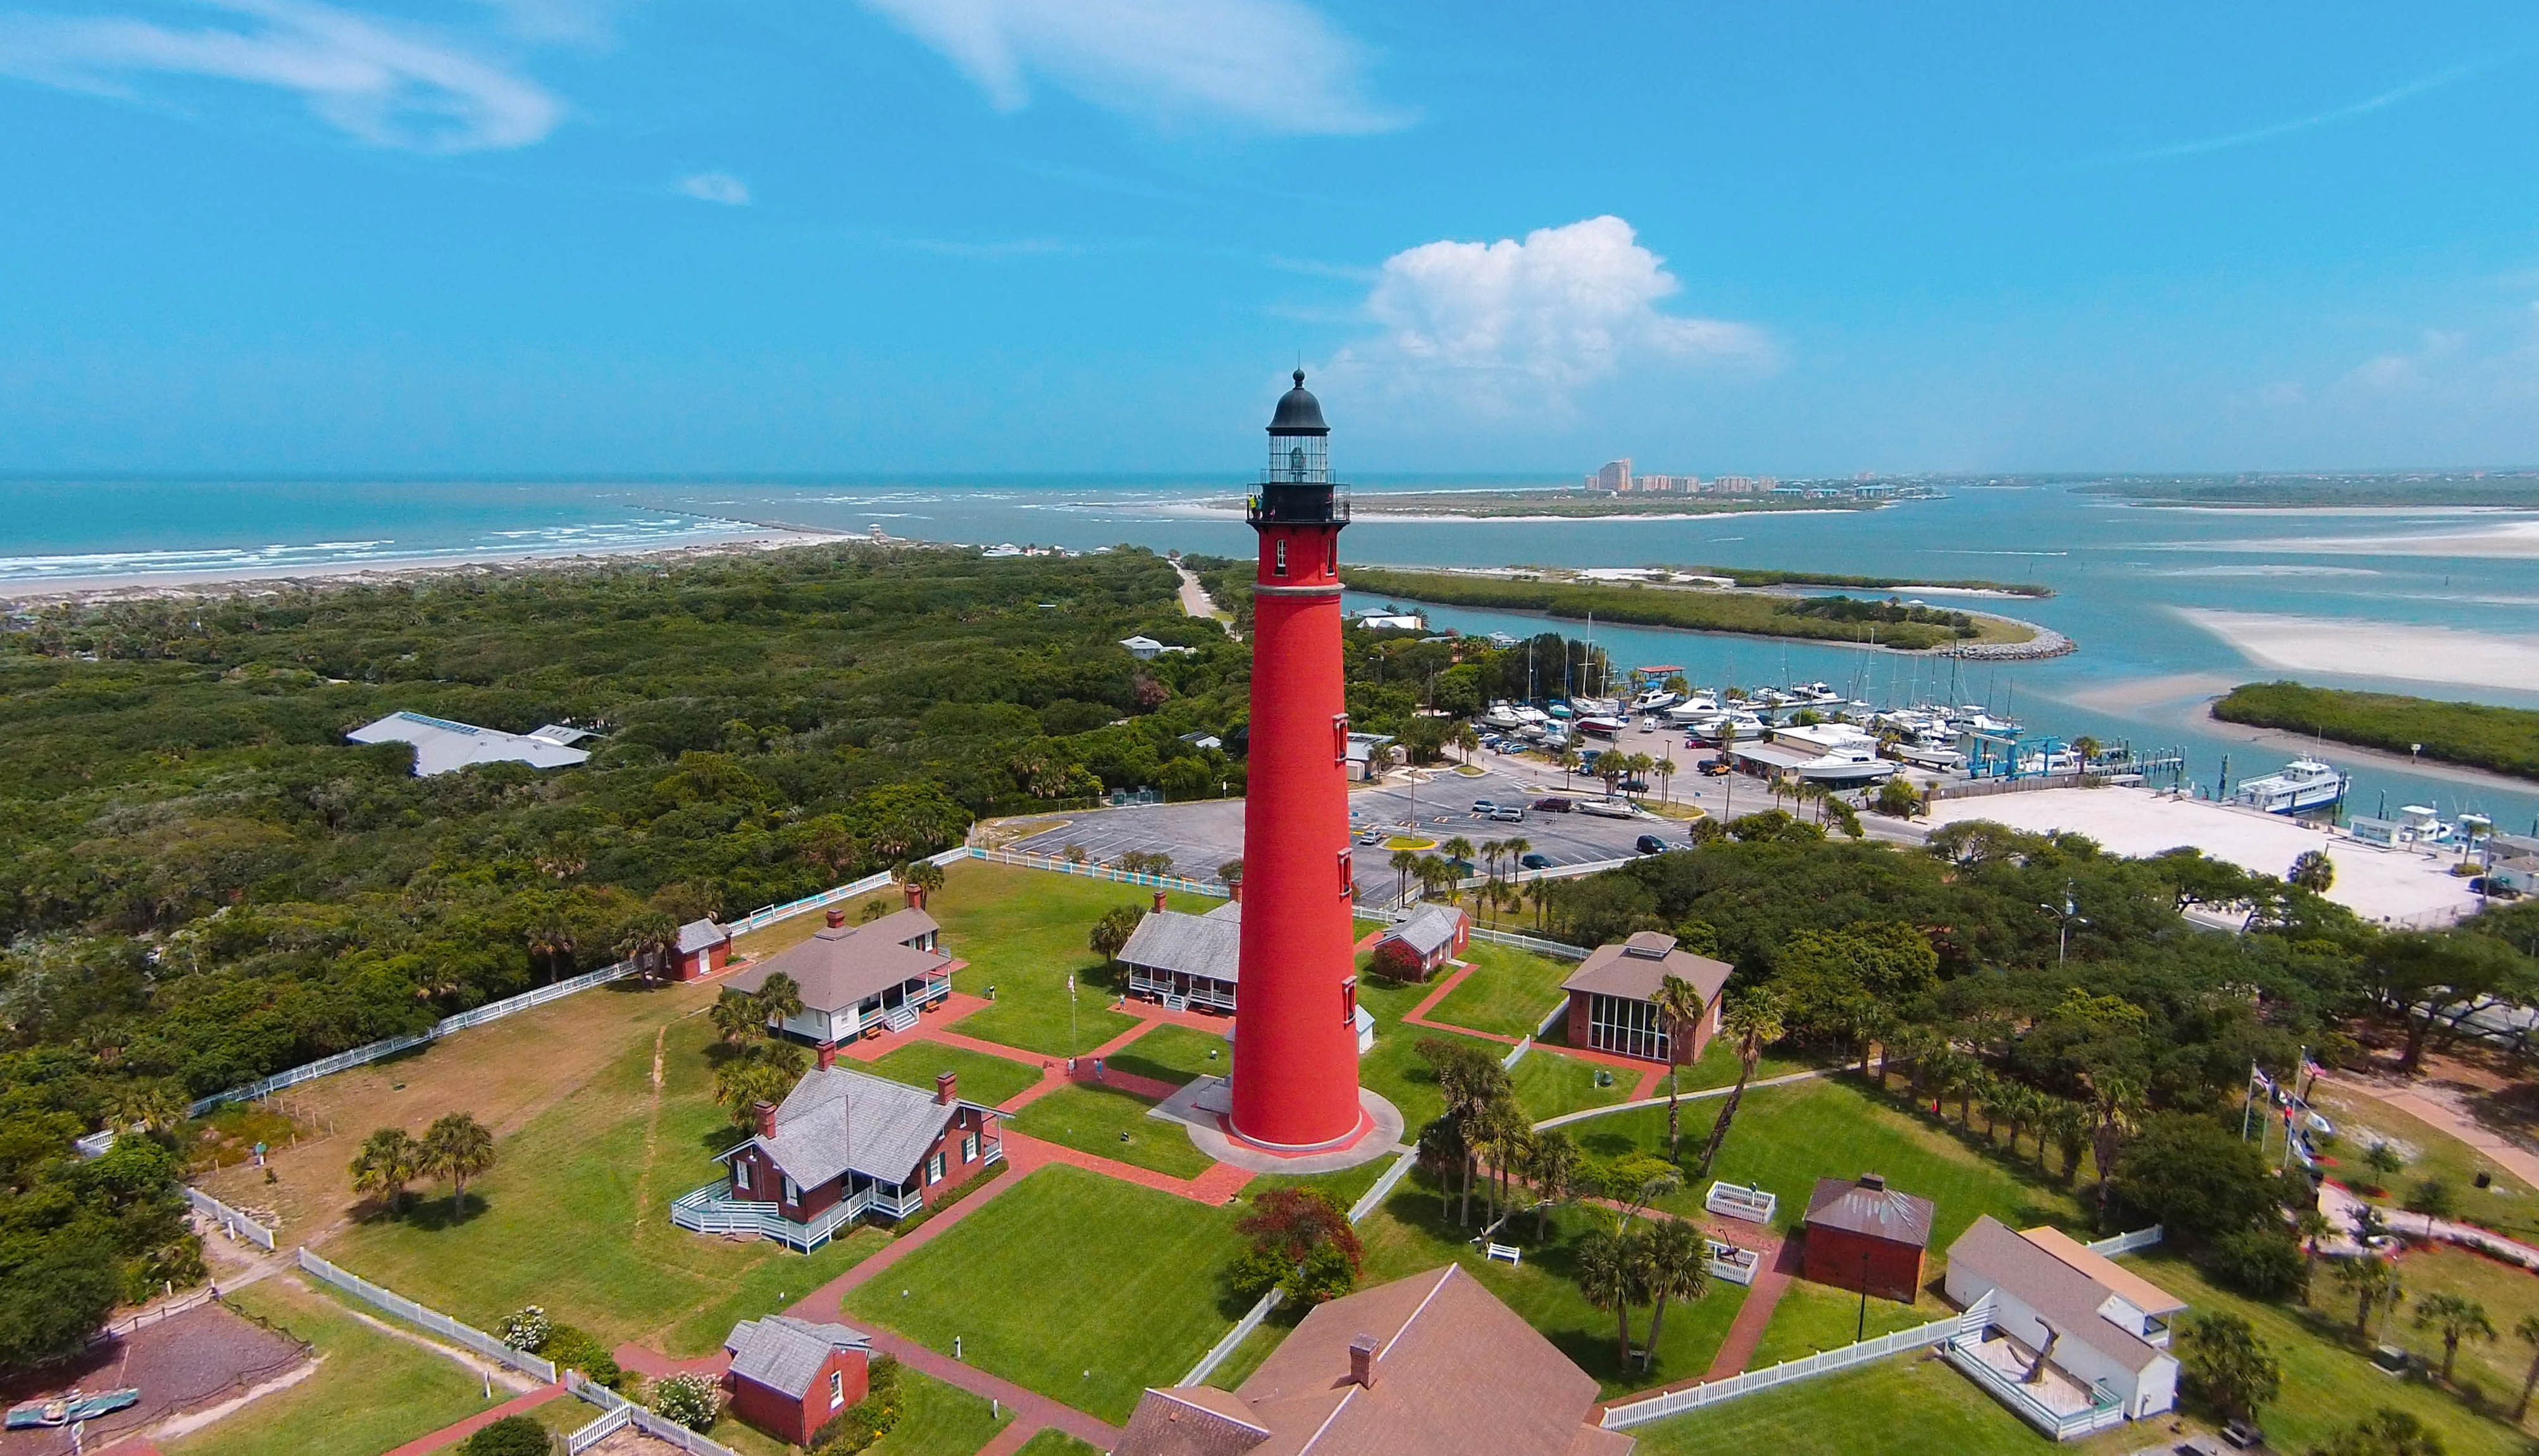 View of the Ponce de Leon Inlet lighthouse and museum.